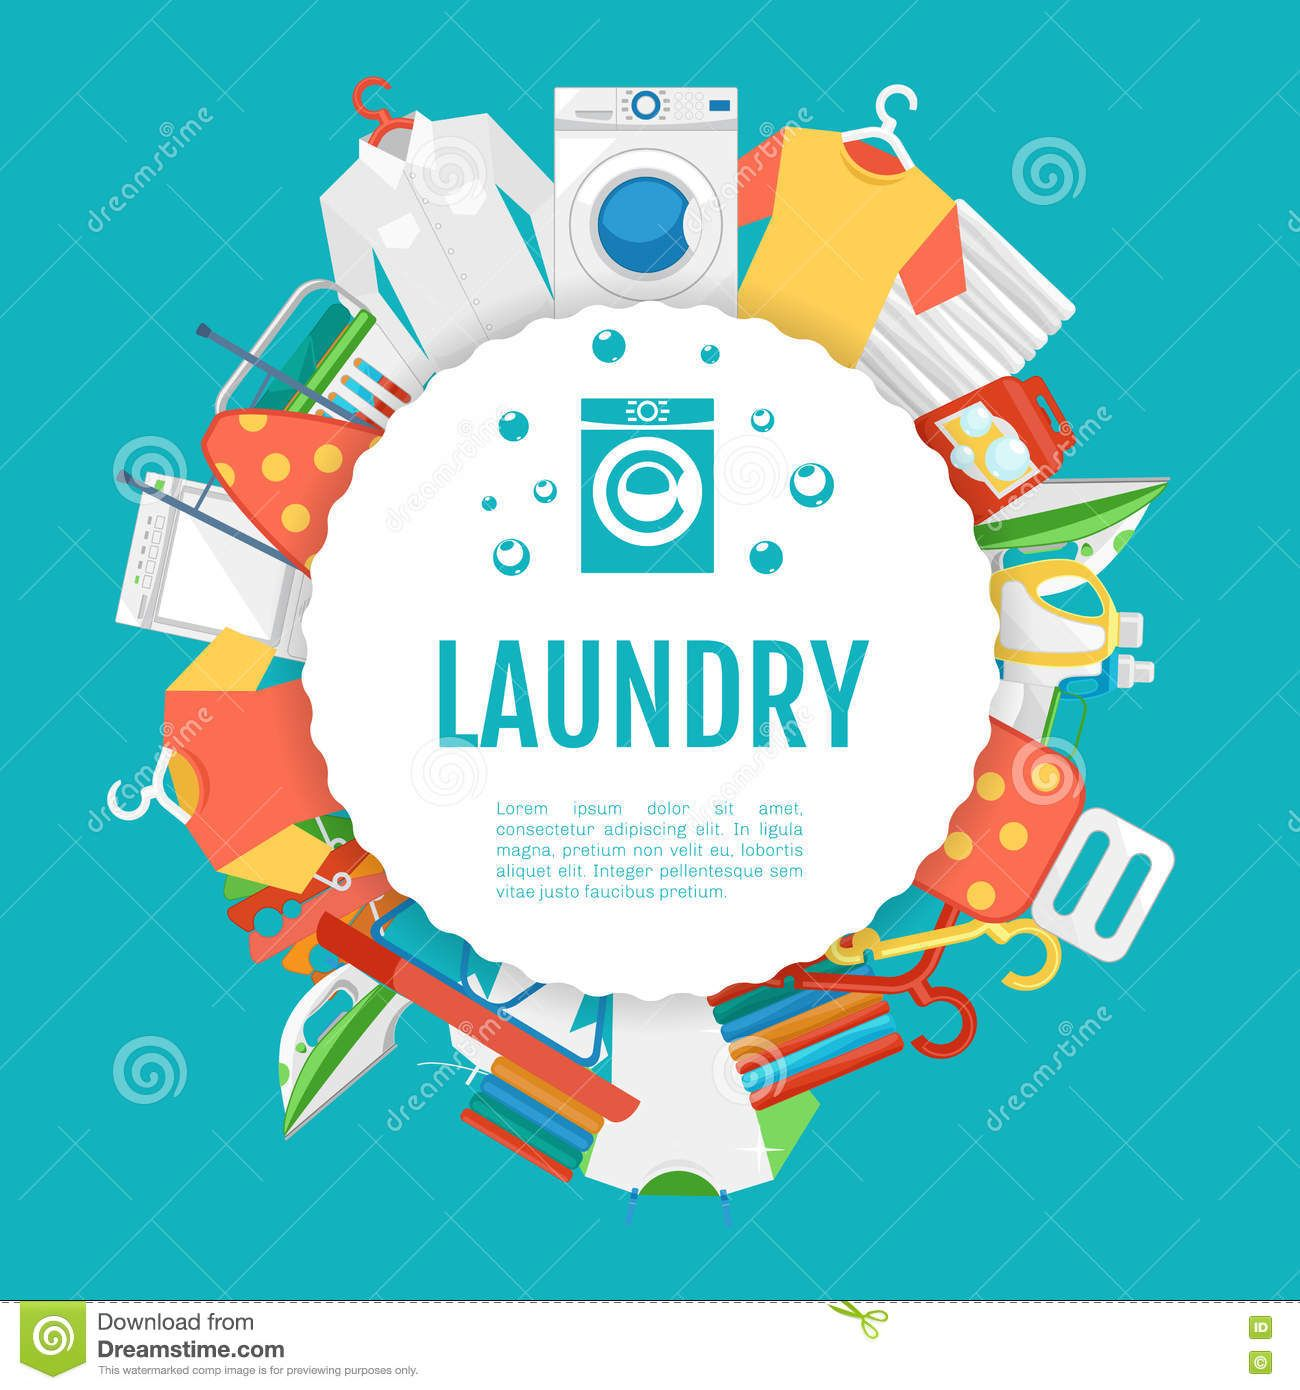 Poster design service - Laundry Service Poster Design Icons Circle Label With Text Download From Over 53 Million